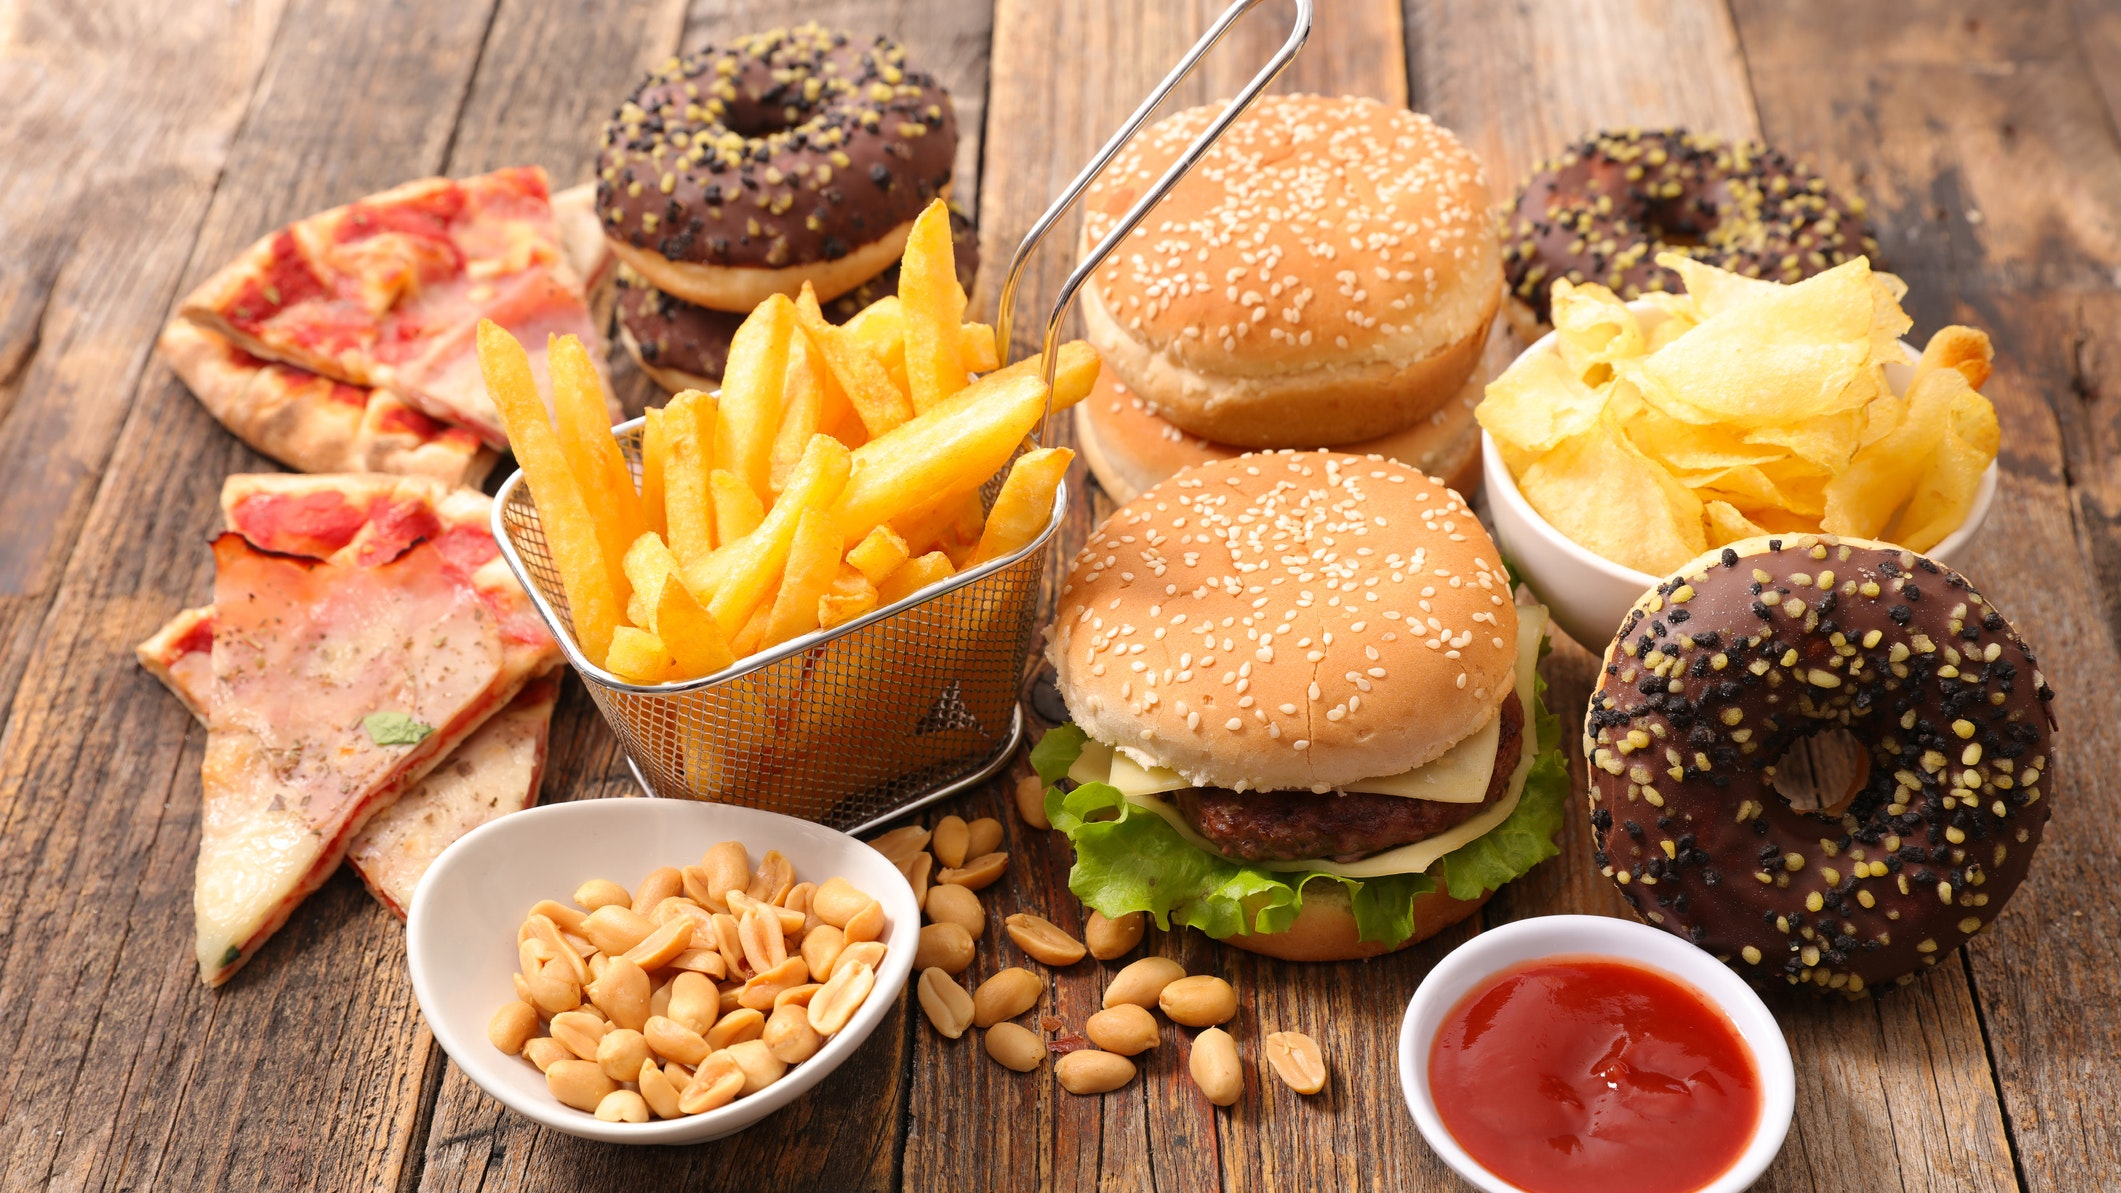 ultra-processed-food-could-raise-cancer-risk--5-of-the-worst-to-avoid-136425065152302601-180215124013.jpg